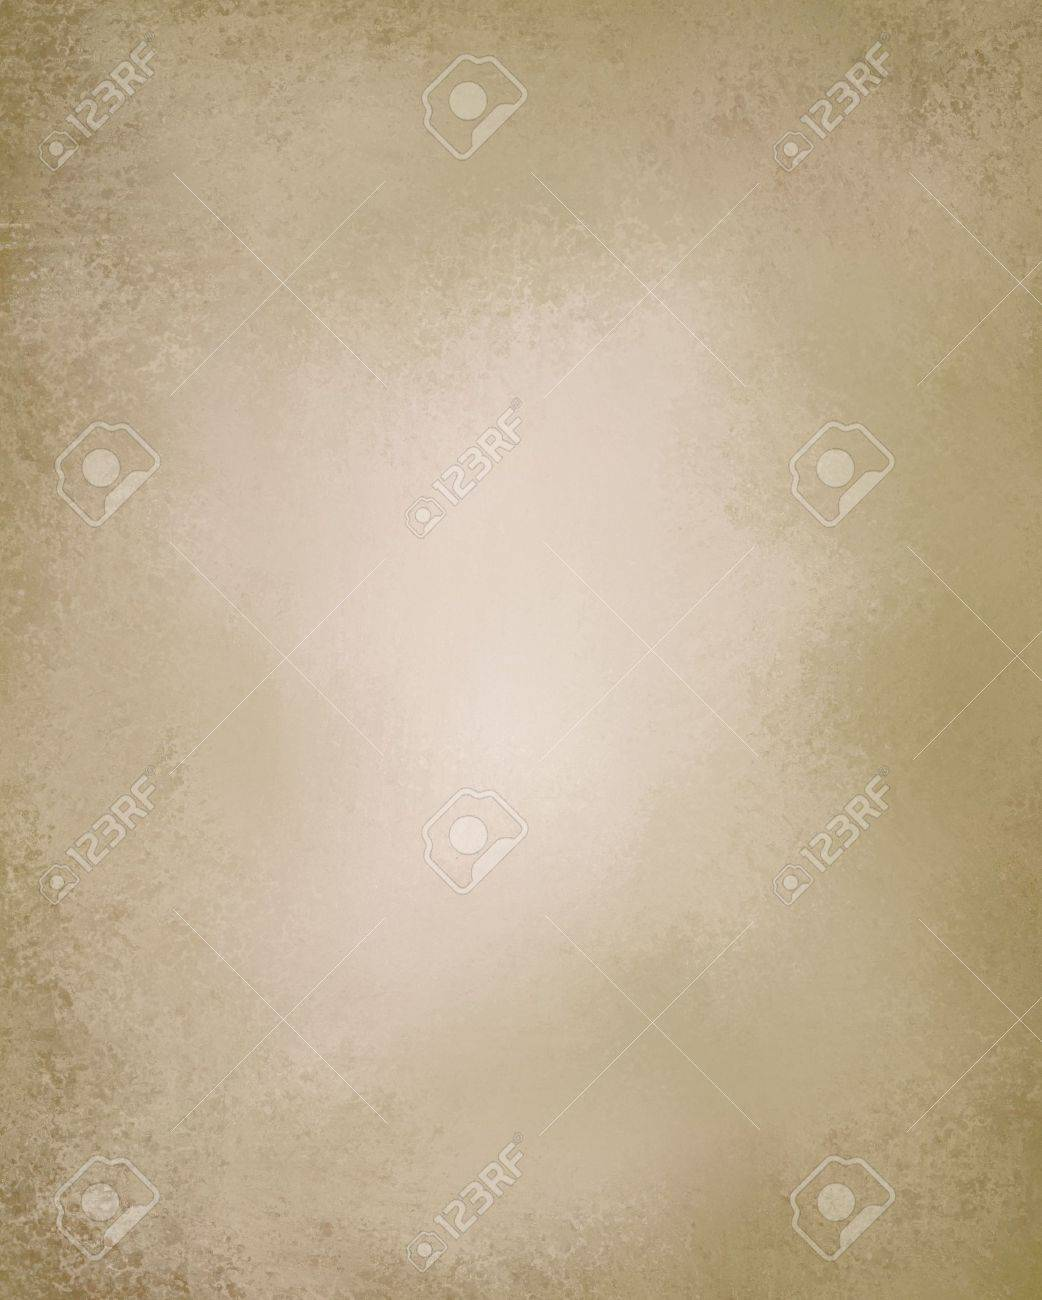 beige or light brown paper background with vintage grunge texture and highlight and old parchment look with copyspace Stock Photo - 12865964